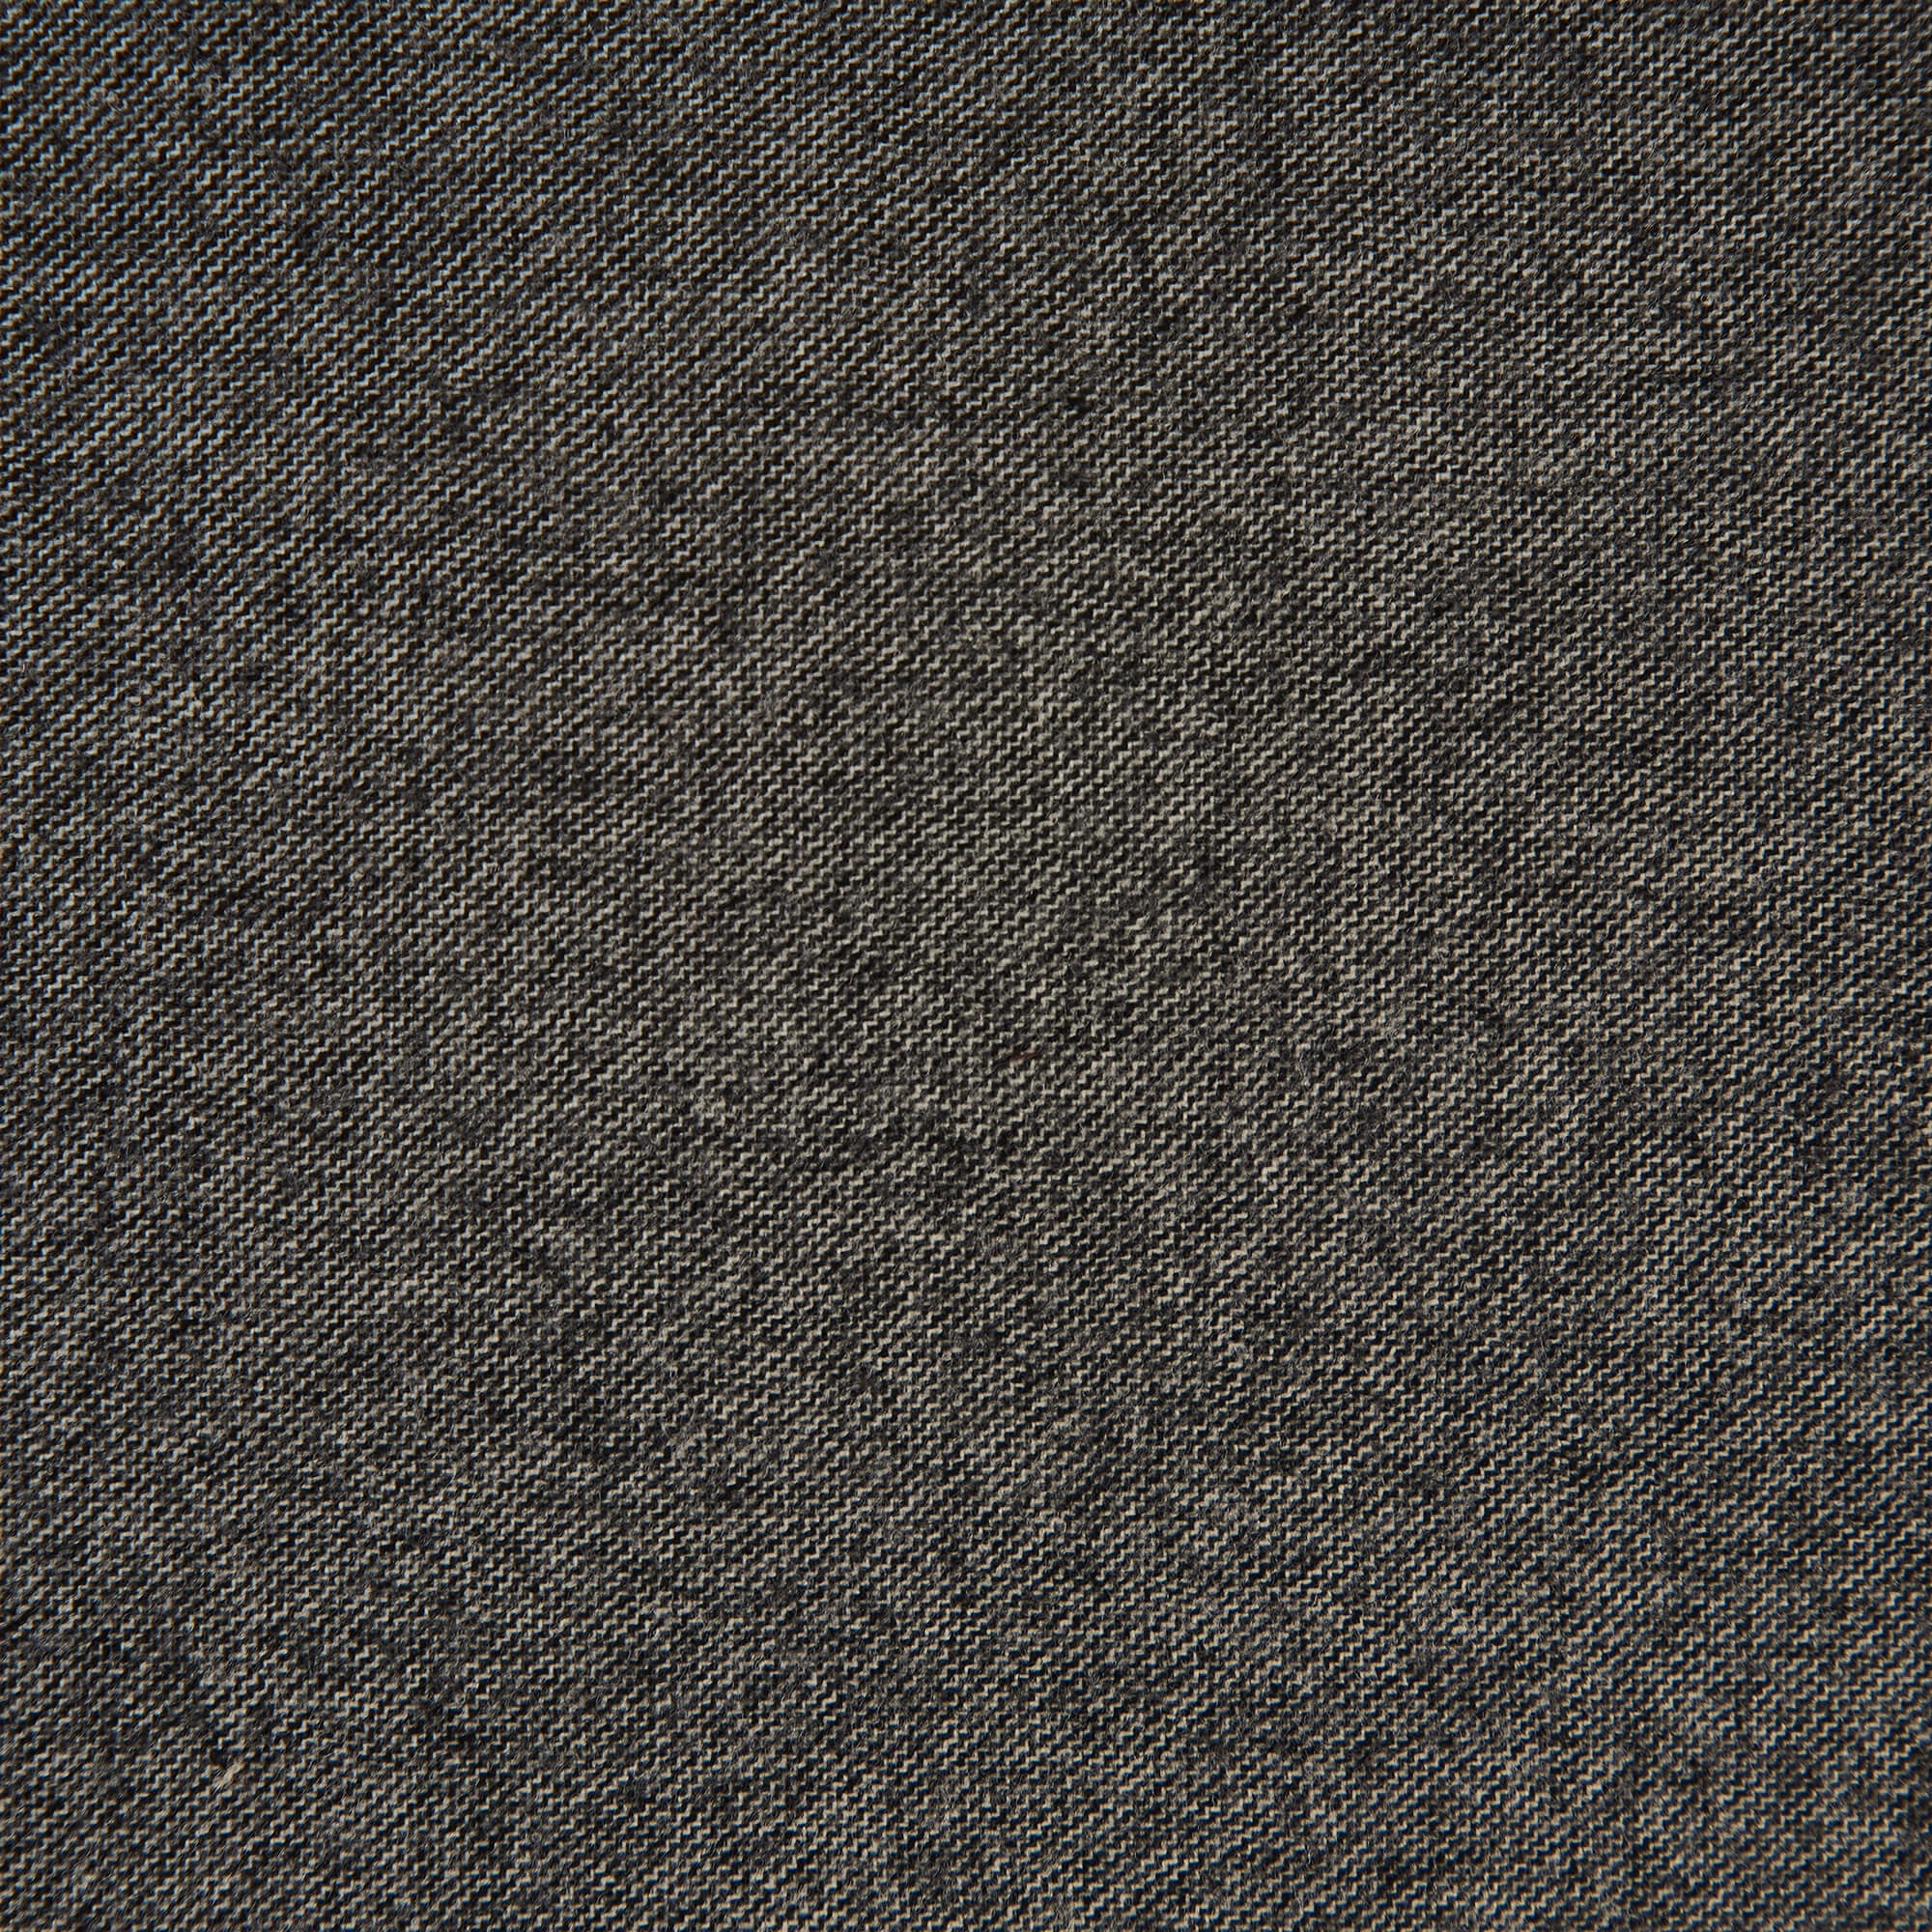 100% wool sharkskin saxony grey fabric